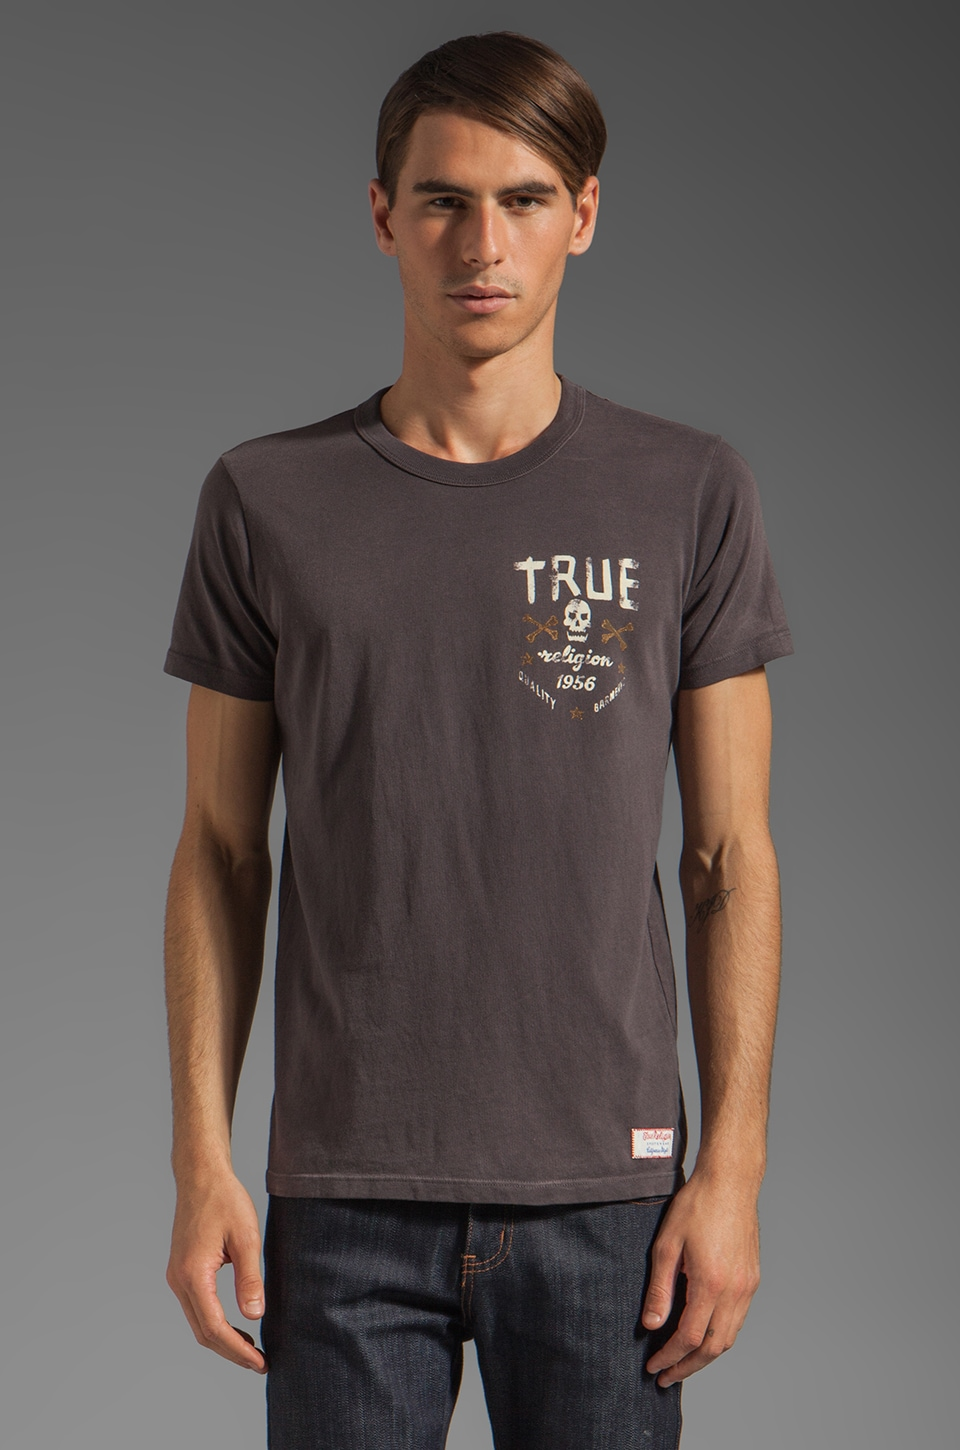 True Religion Skull and Bones Tee in Charcoal